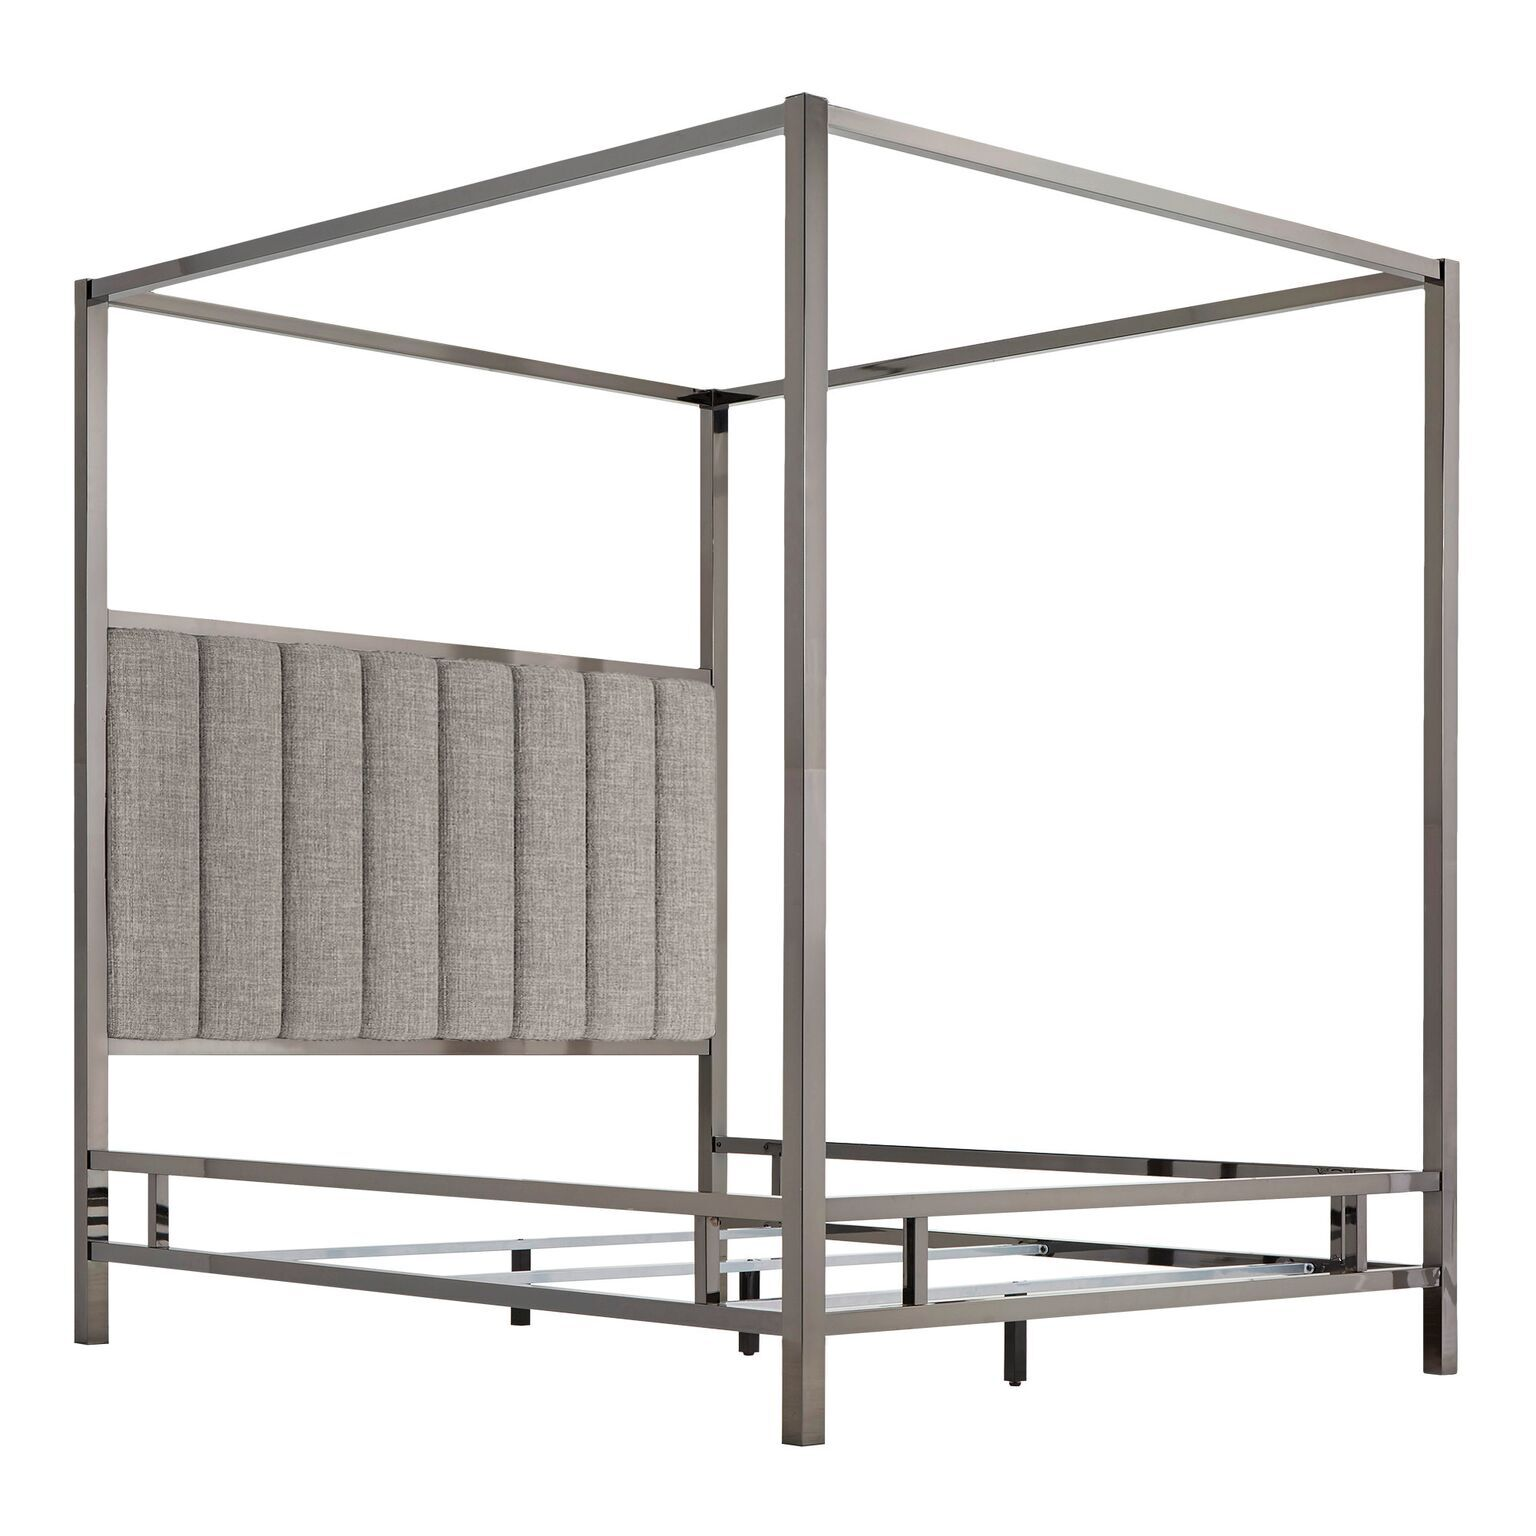 Wicklund Upholstered Canopy Bed Color (Frame/Headboard): Black Nickel/Gray, Size: King